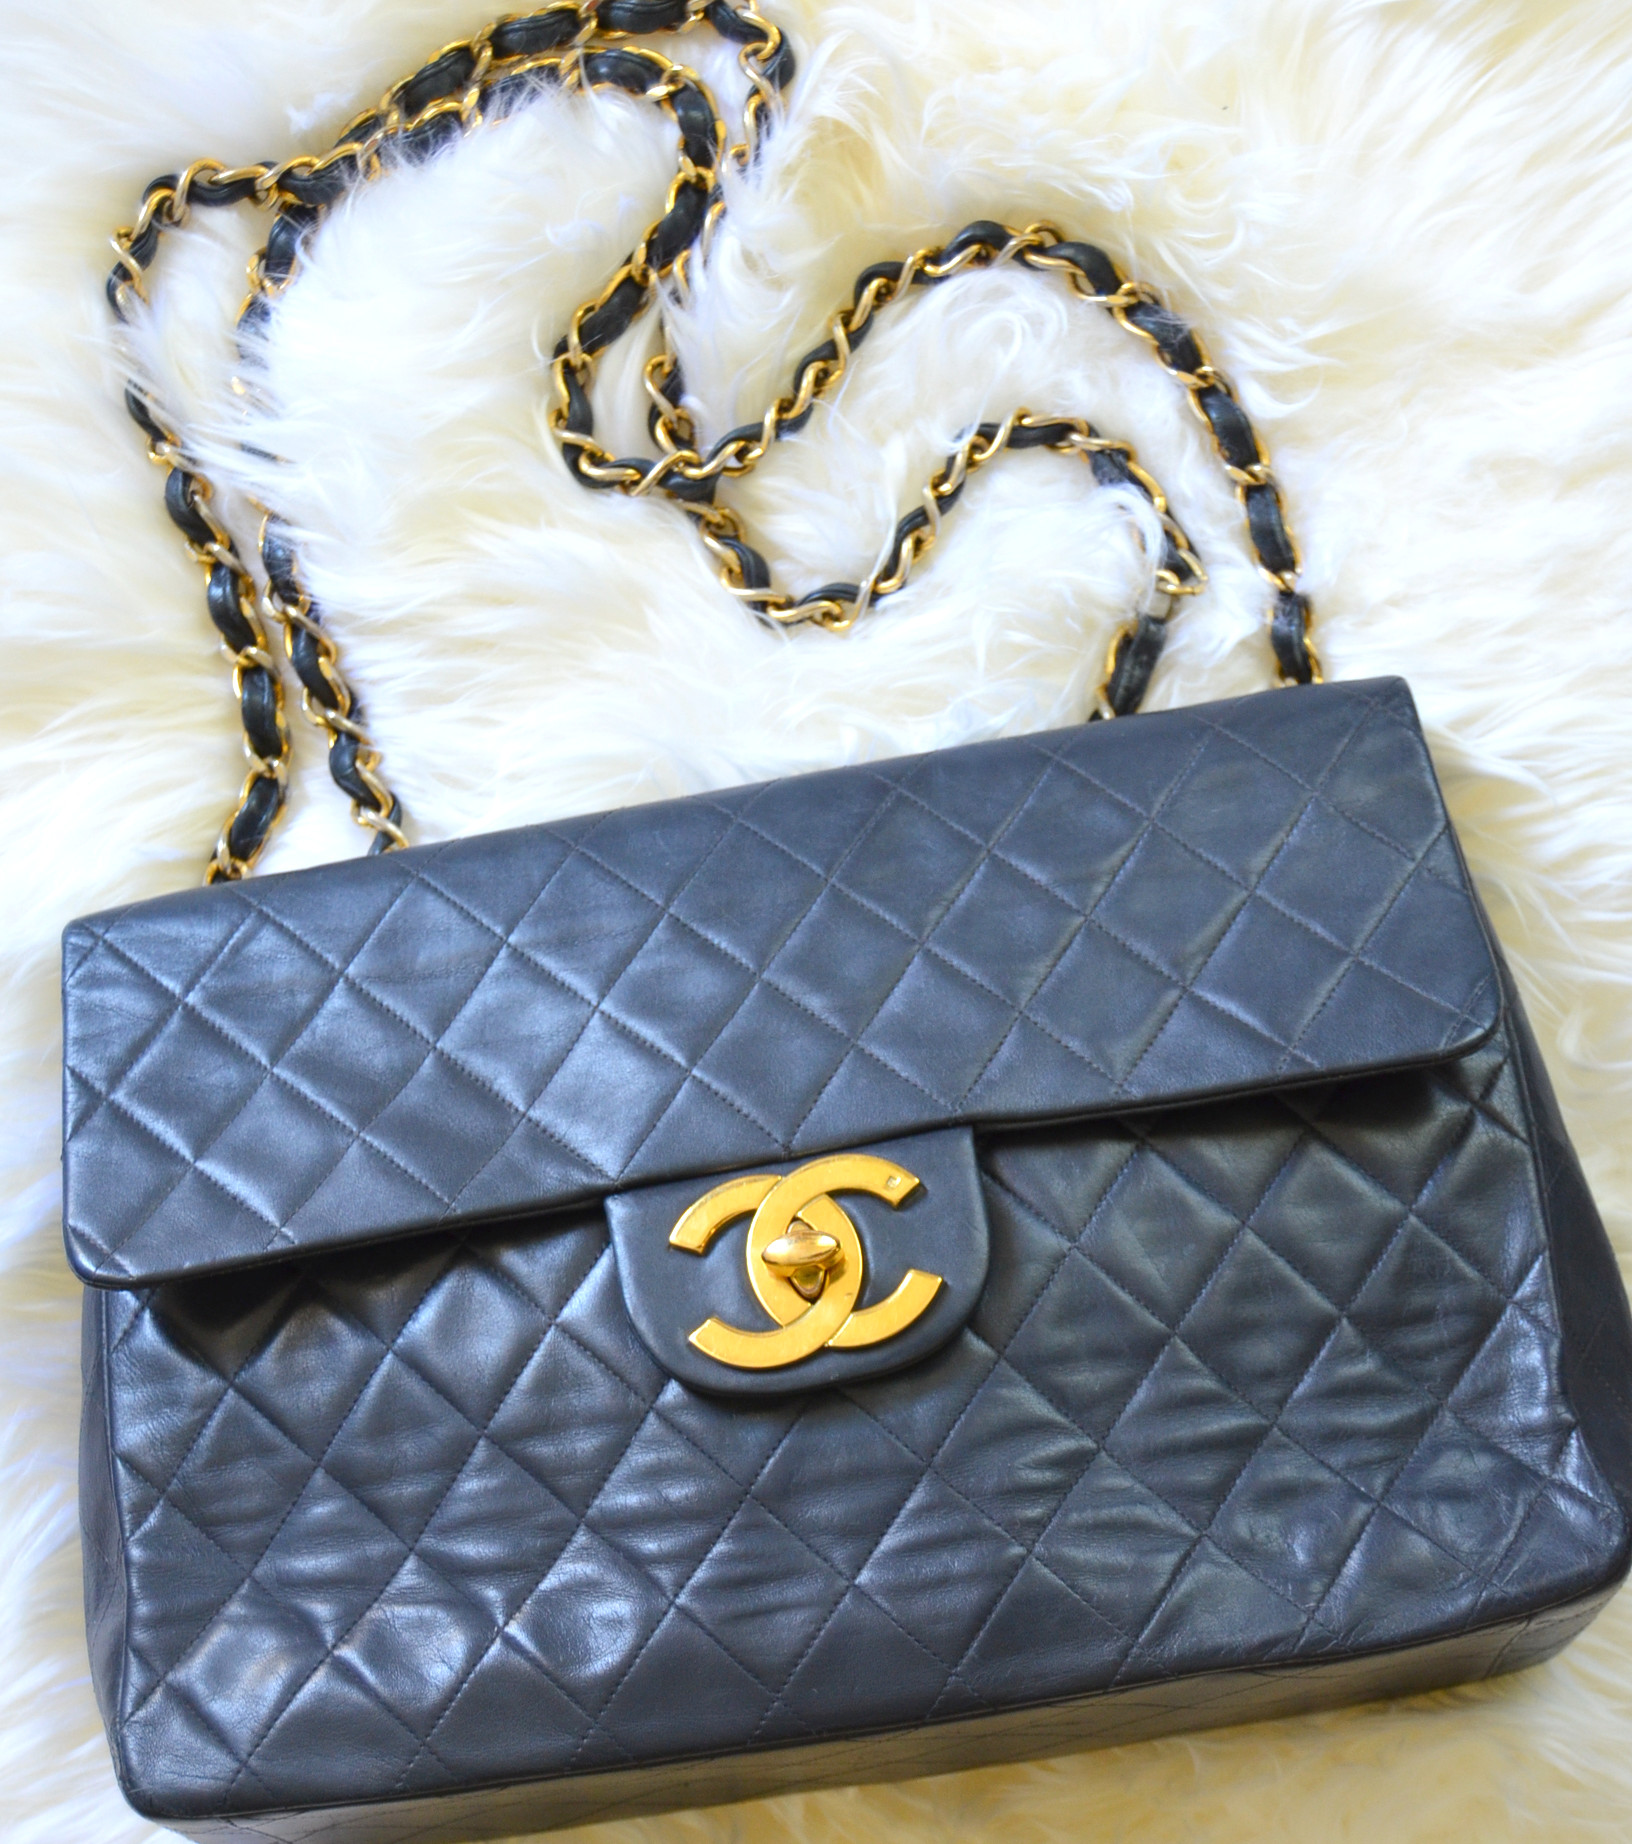 2a67f450dad89 Bag Review  What Fits in a vintage Chanel Maxi Jumbo CC Flap